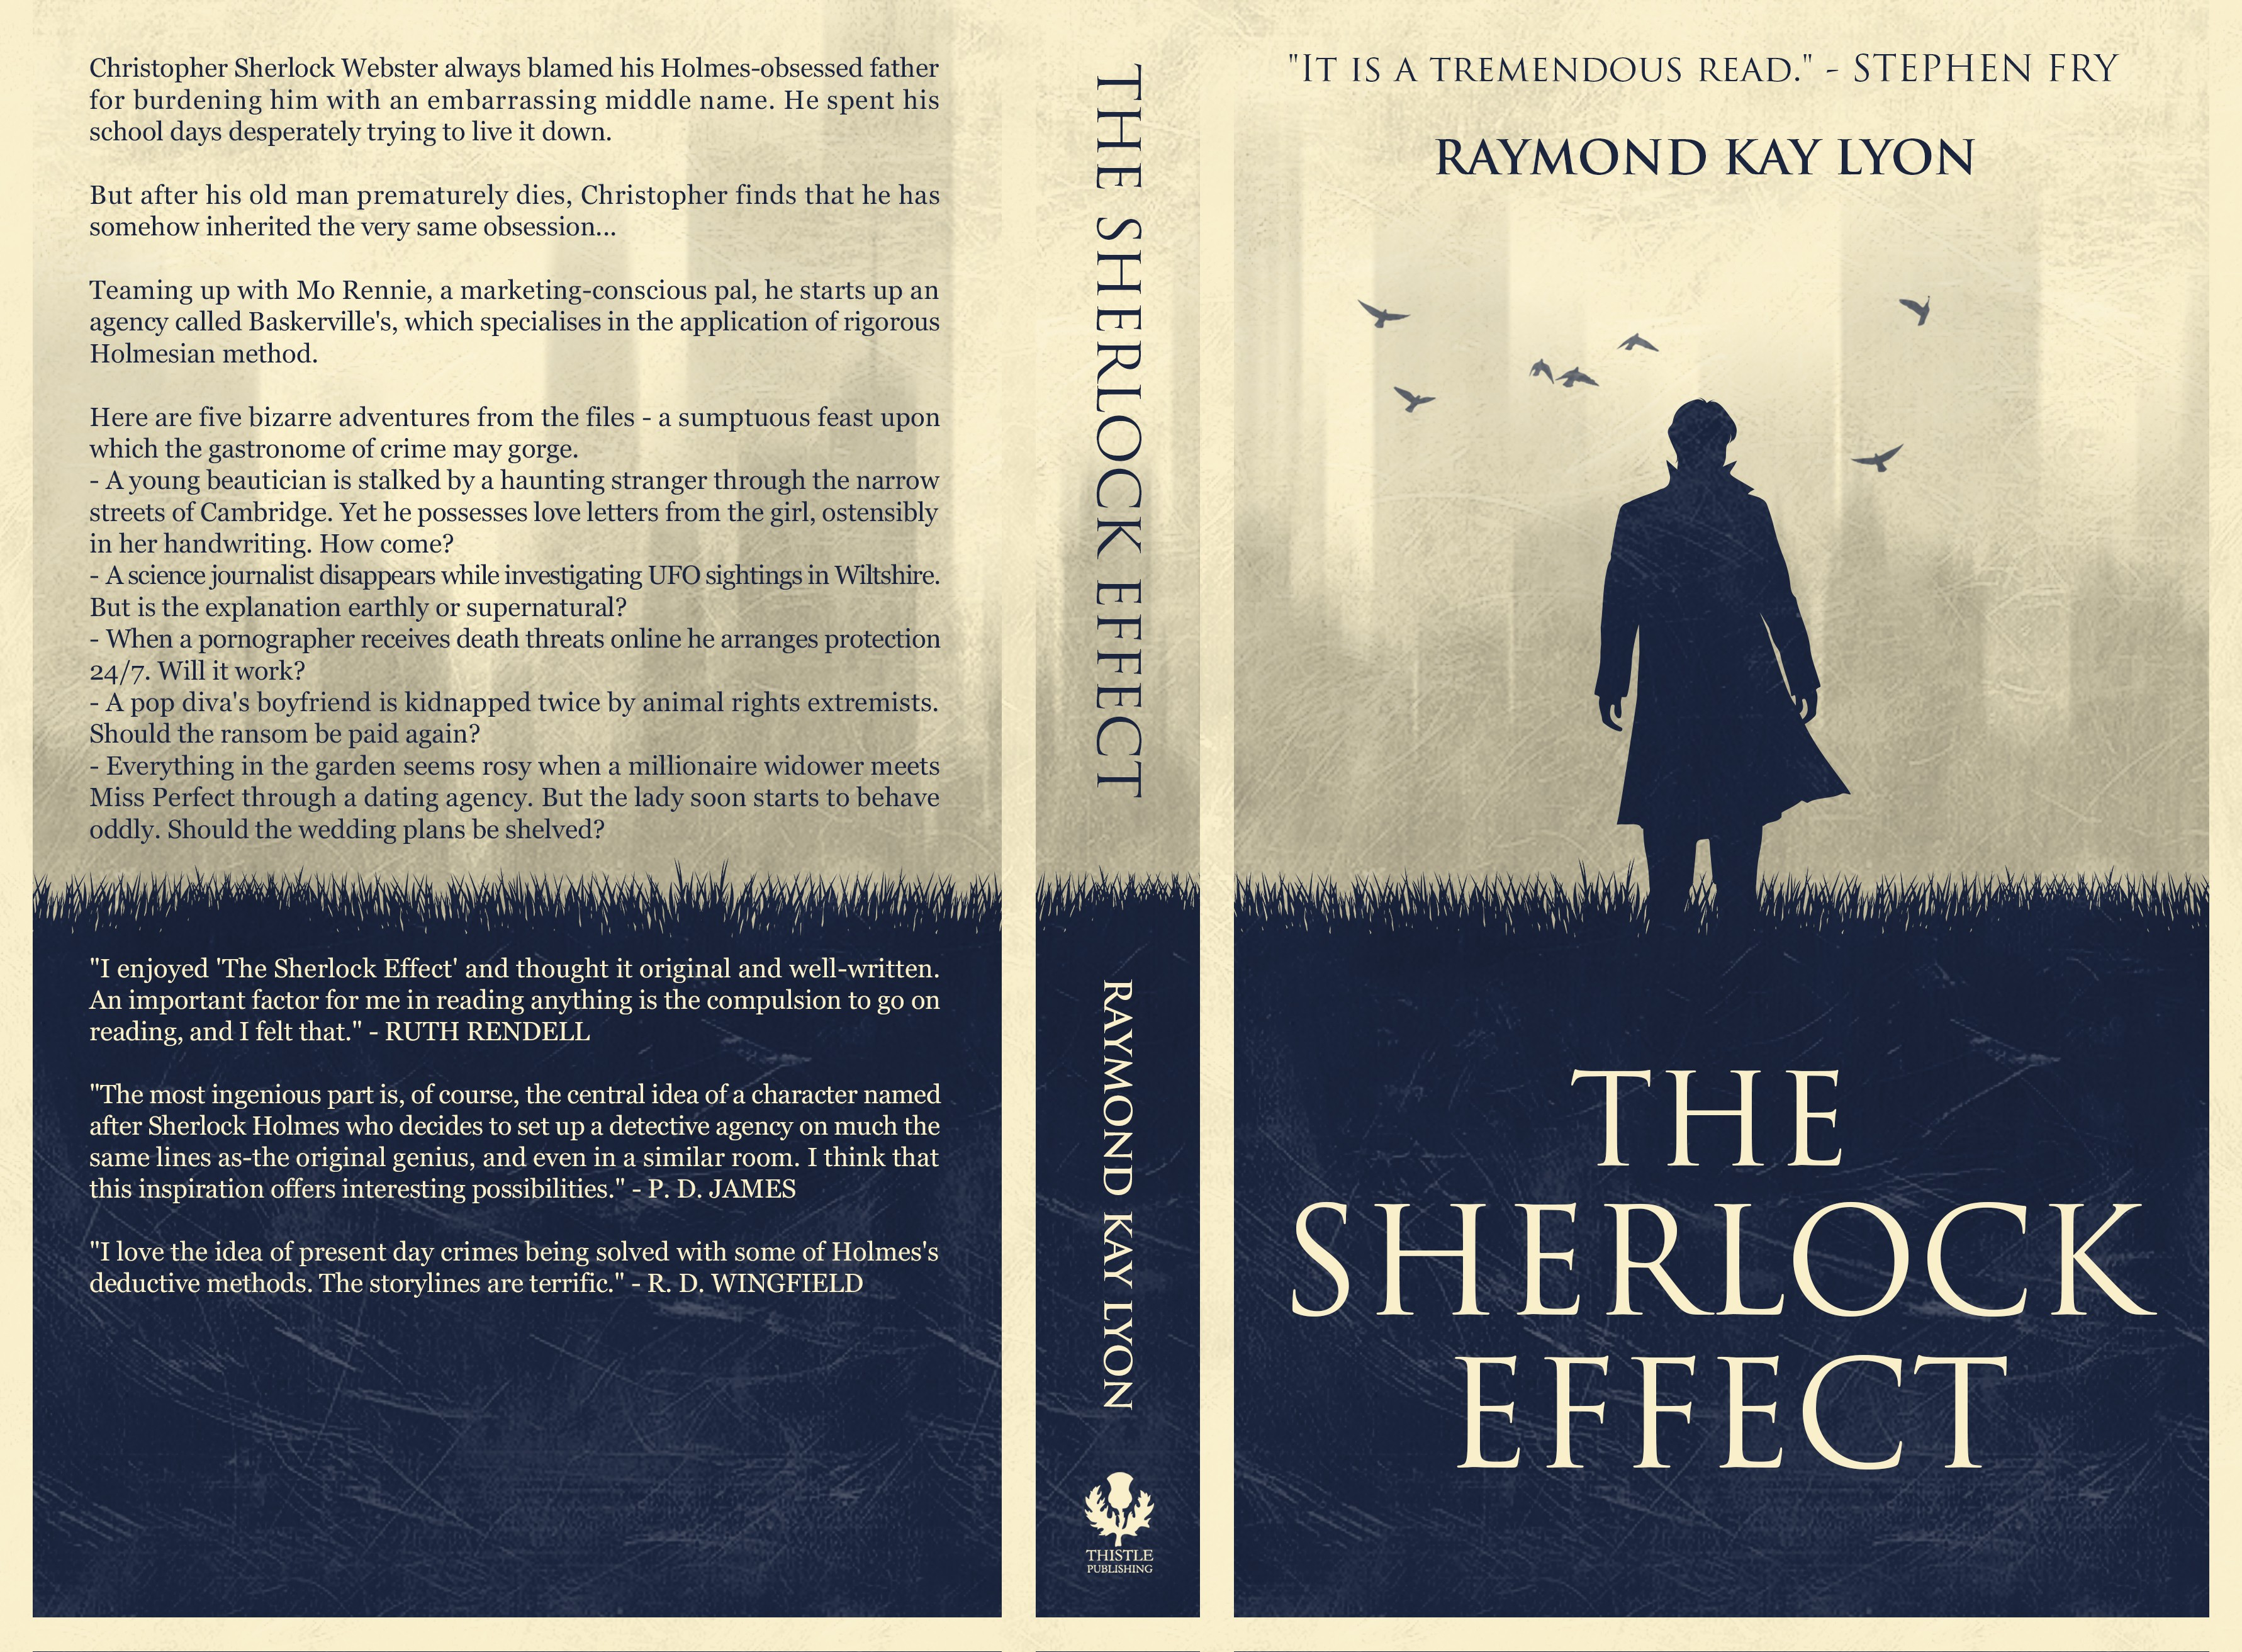 Book cover for a detective novel about a modern-day Sherlock Holmes